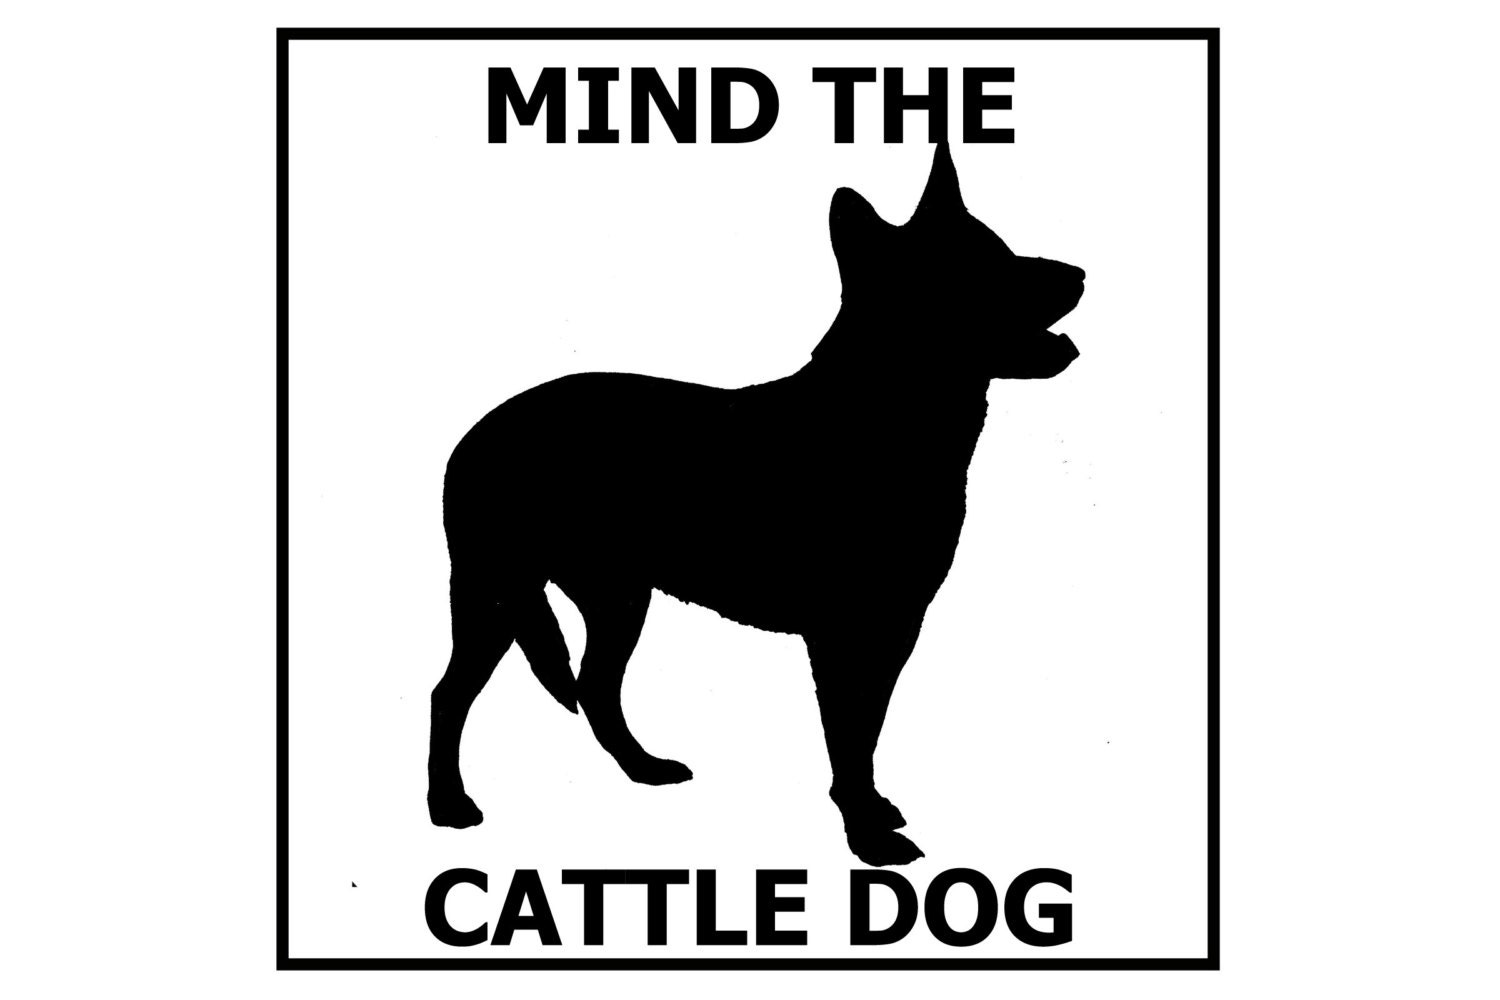 Show Cattle Silhouette Mind the cattle dog ceramic